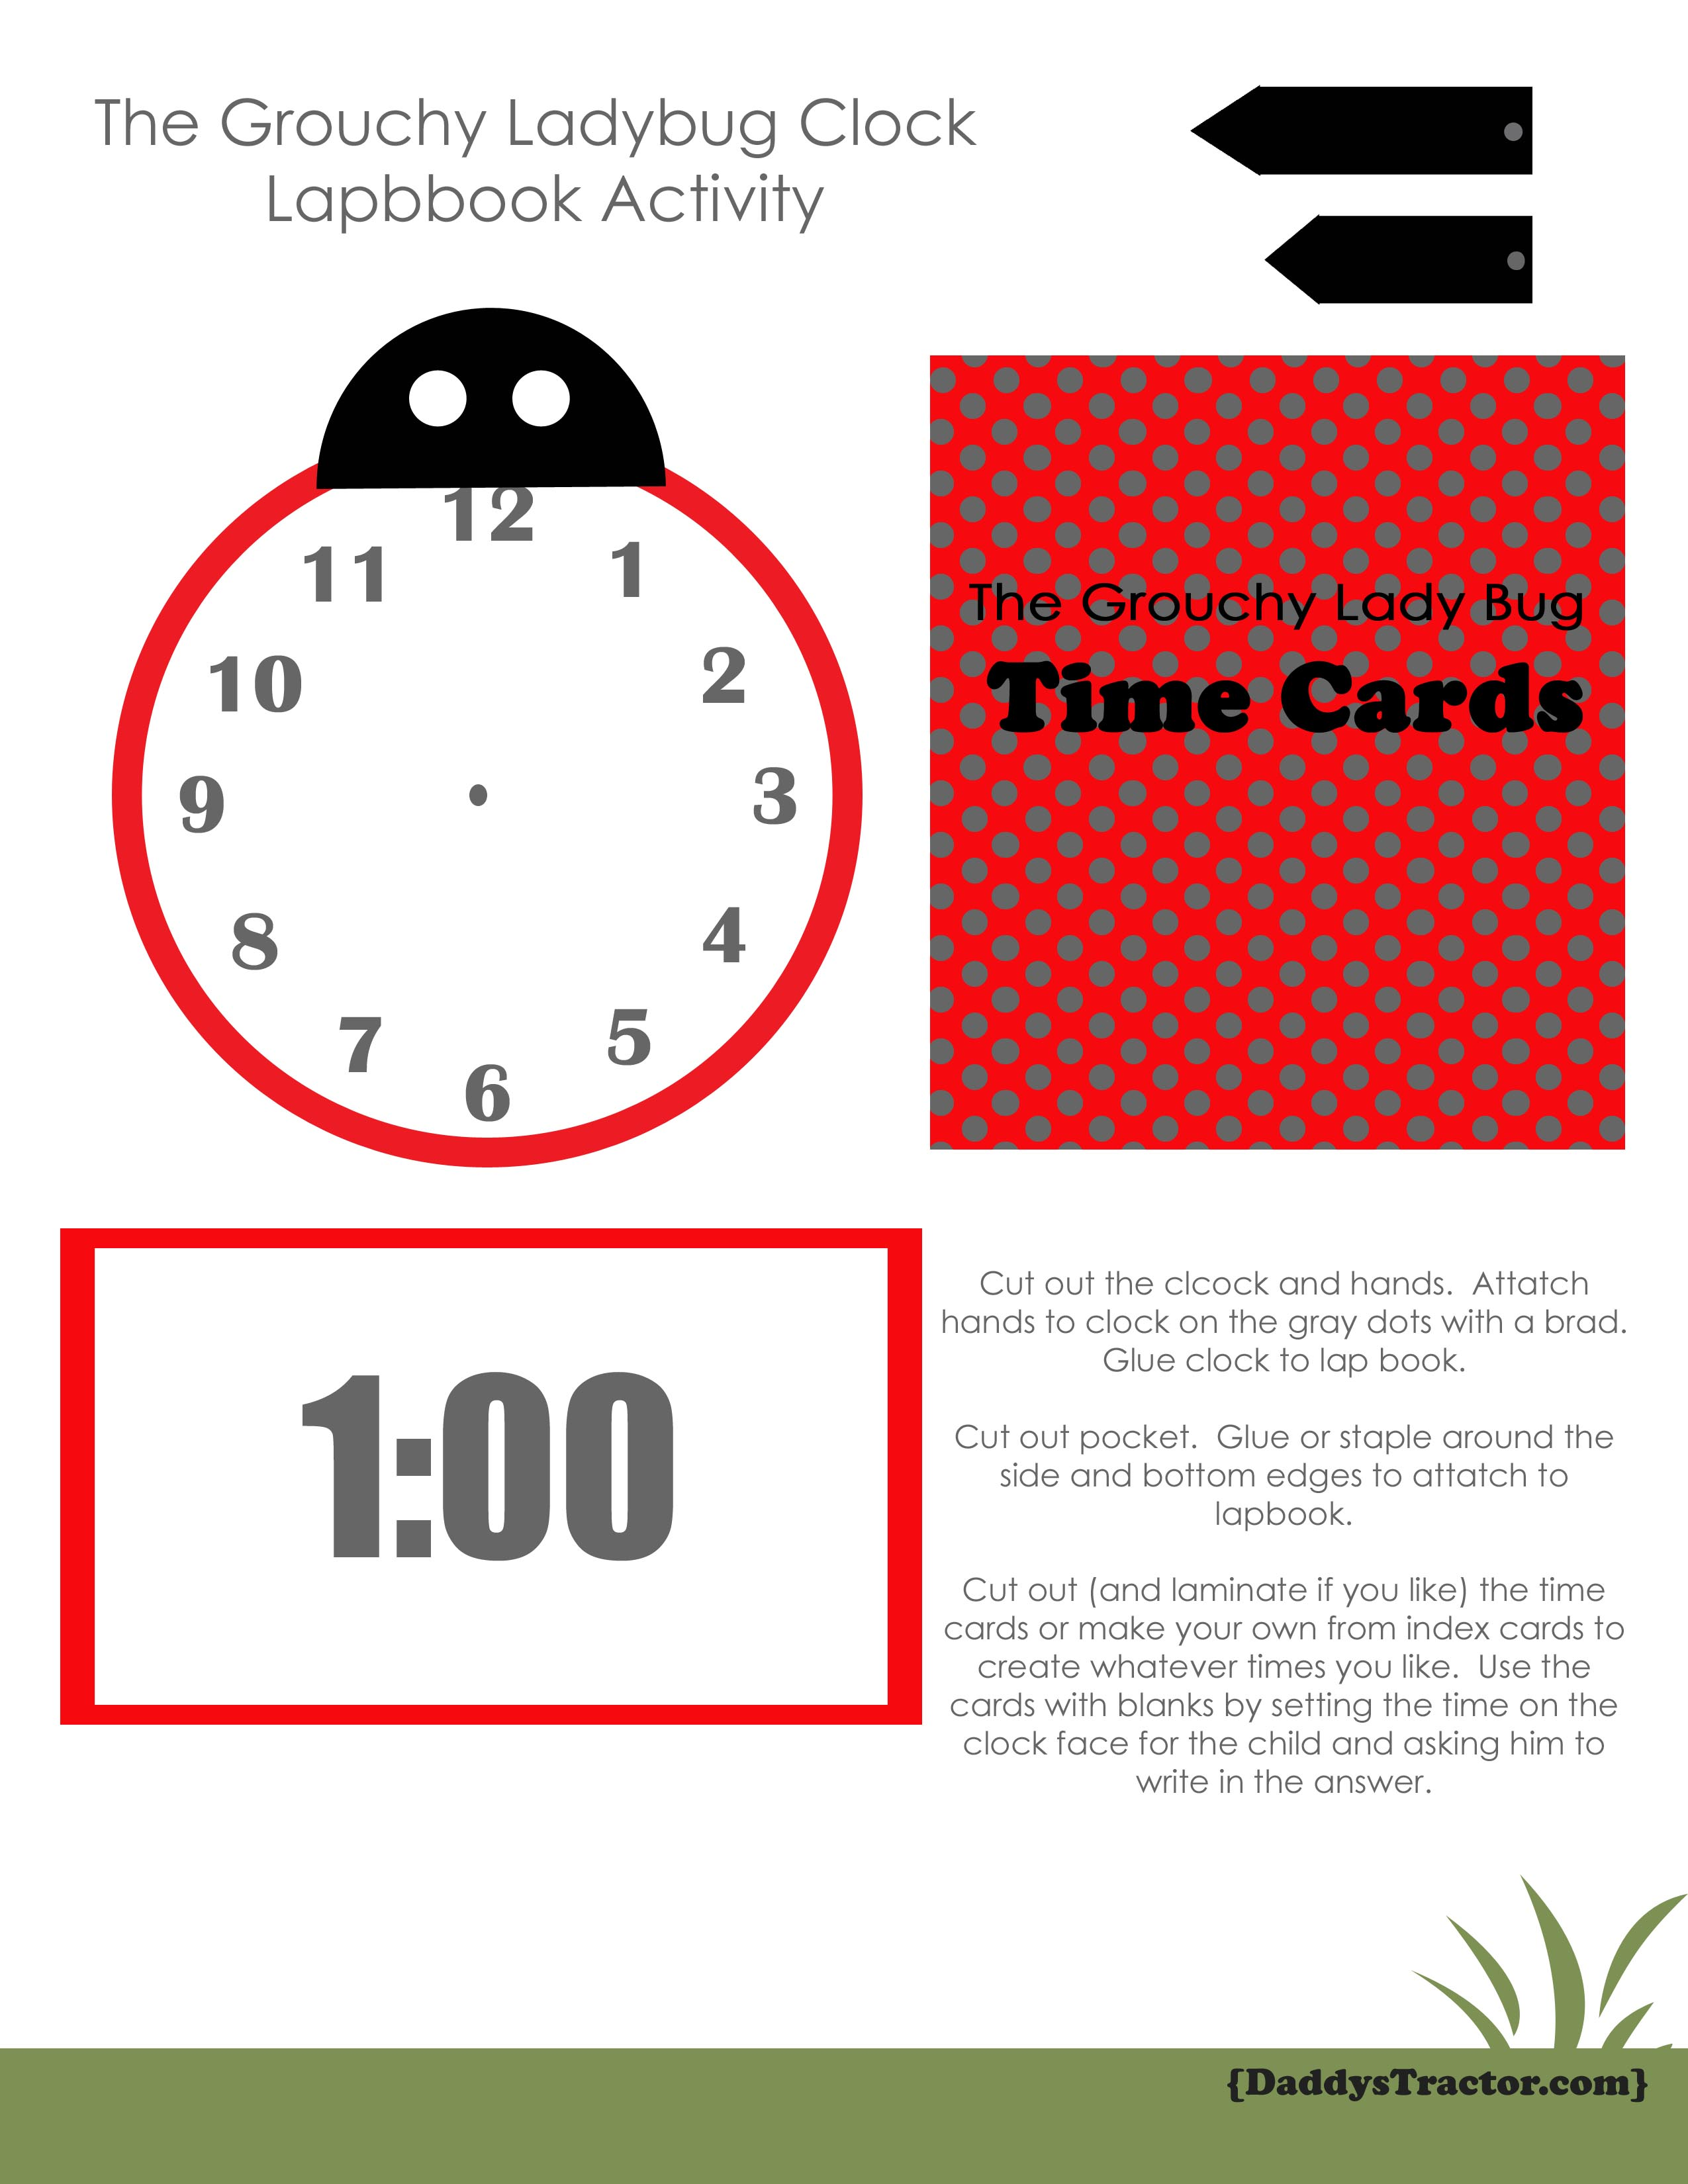 Grouchy Ladybug Insect Activity or Lapbook | Daddy's Tractor